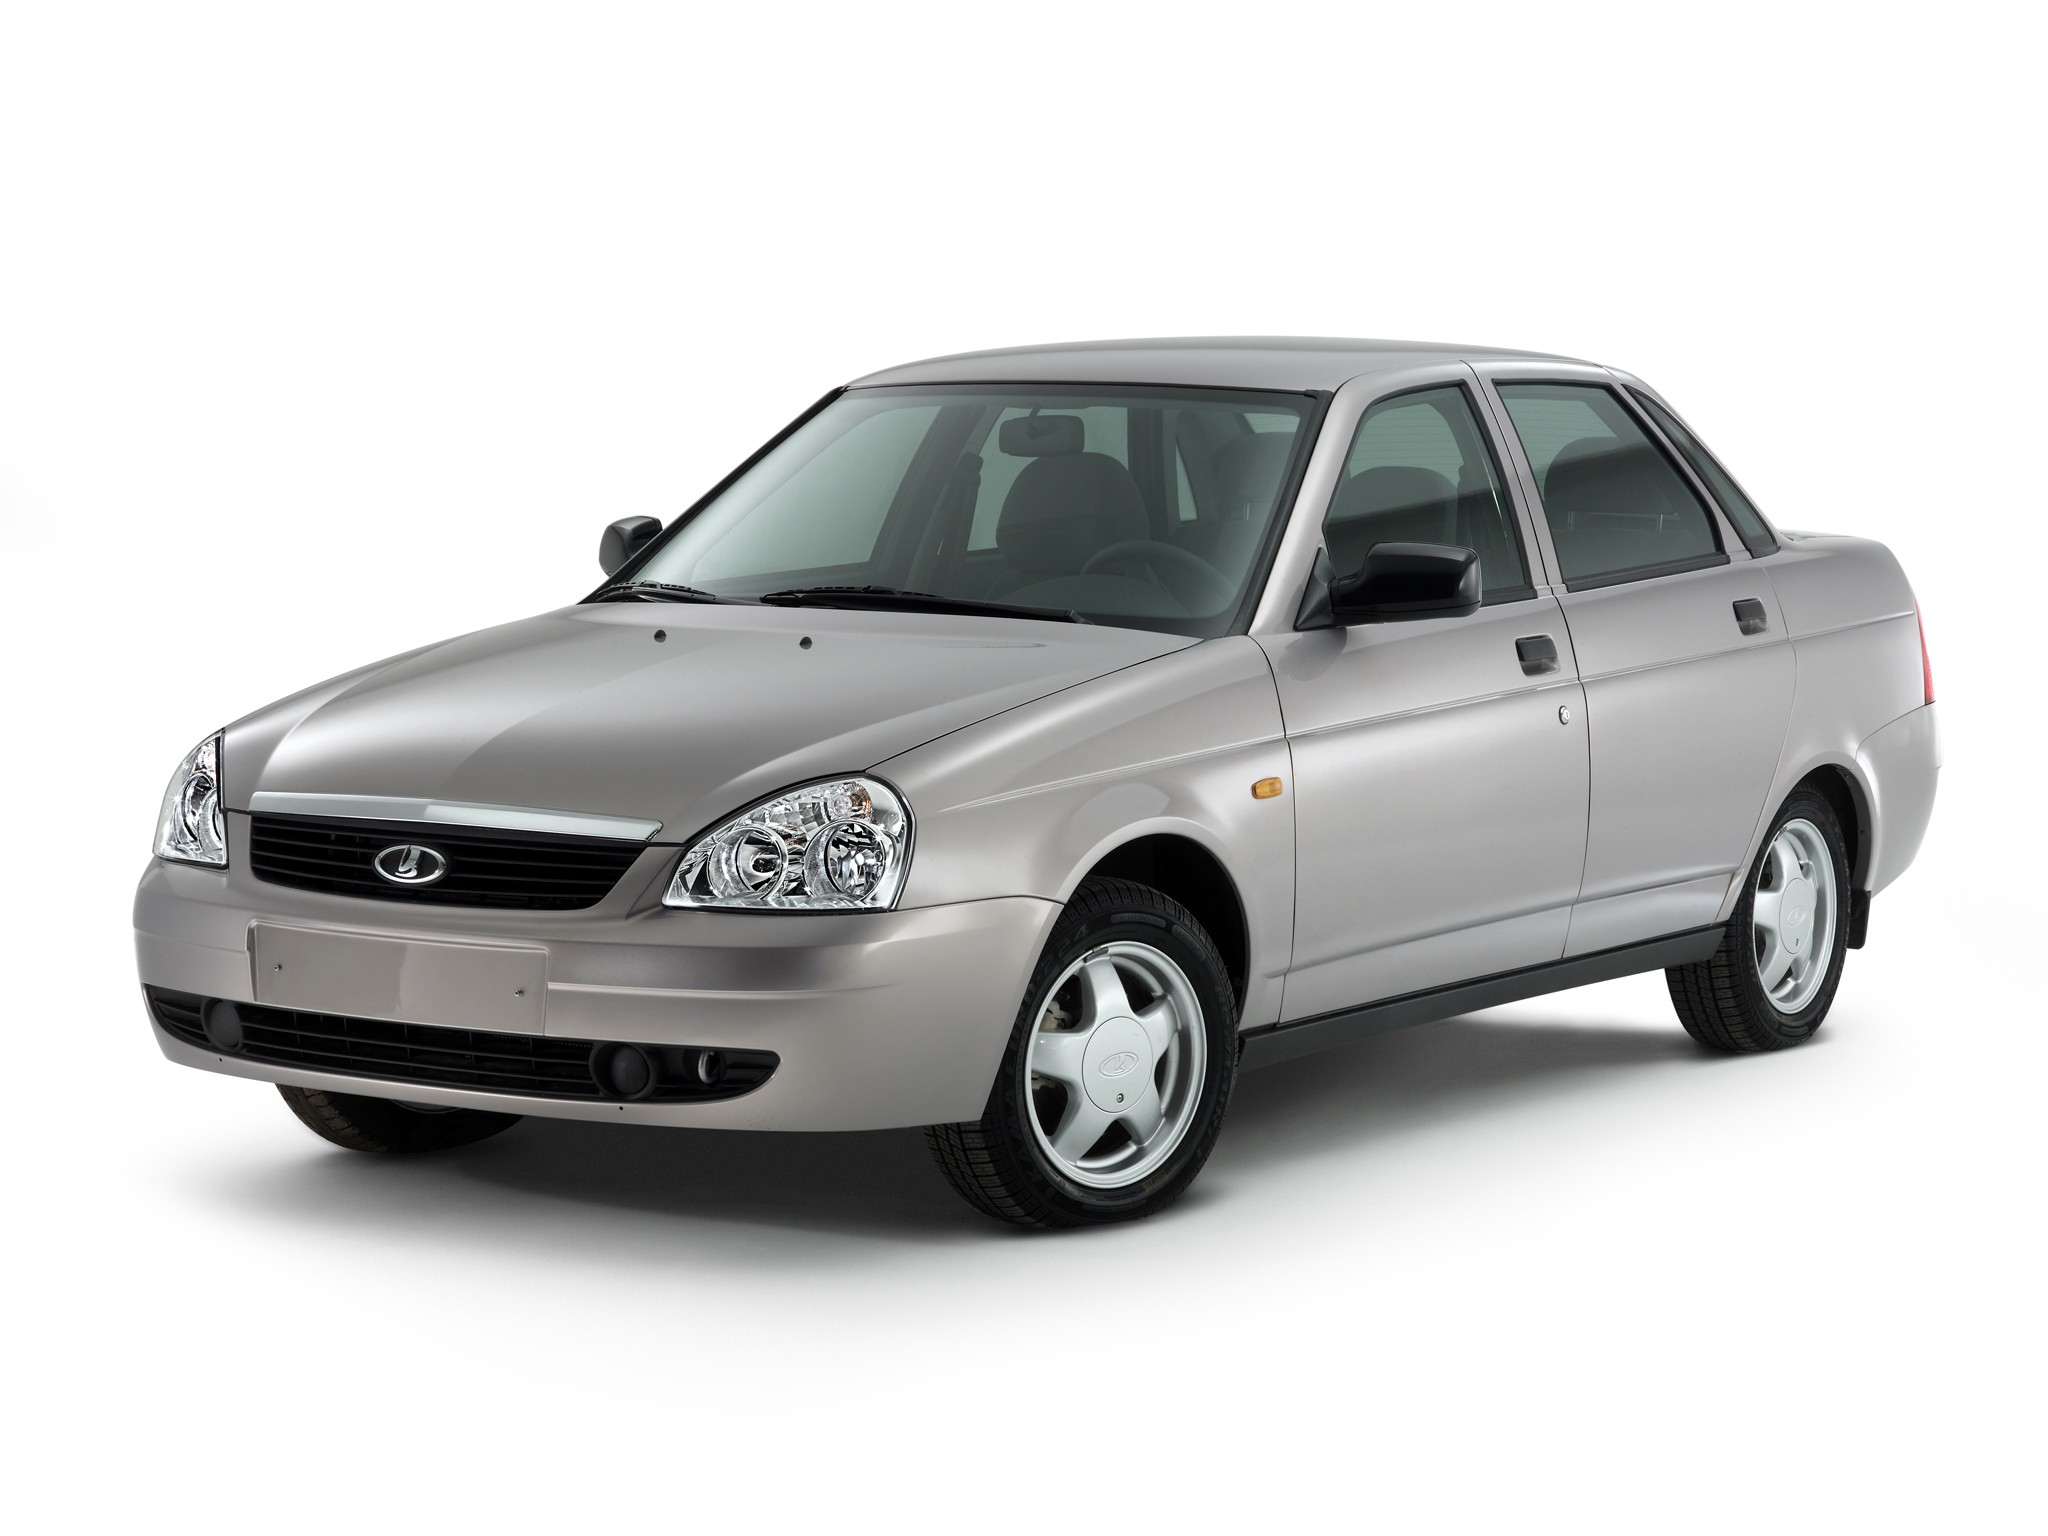 LADA Priora specs & photos - 2008, 2009, 2010, 2011, 2012, 2013, 2014, 2015, 2016, 2017, 2018 ...